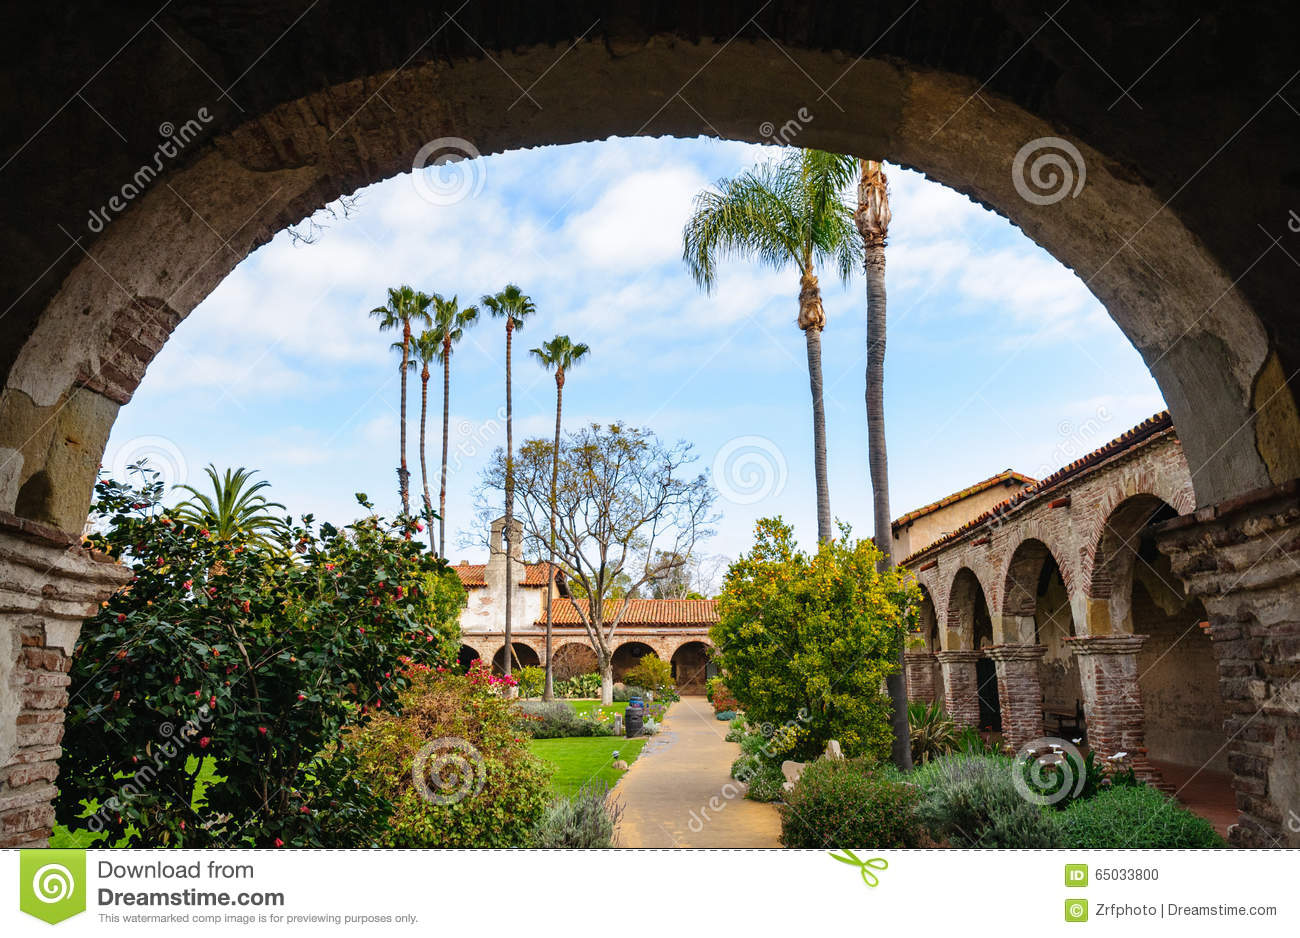 san juan capistrano singles Book your tickets online for the top things to do in san juan capistrano, california on tripadvisor: see 14,724 traveler reviews and photos of san juan capistrano.